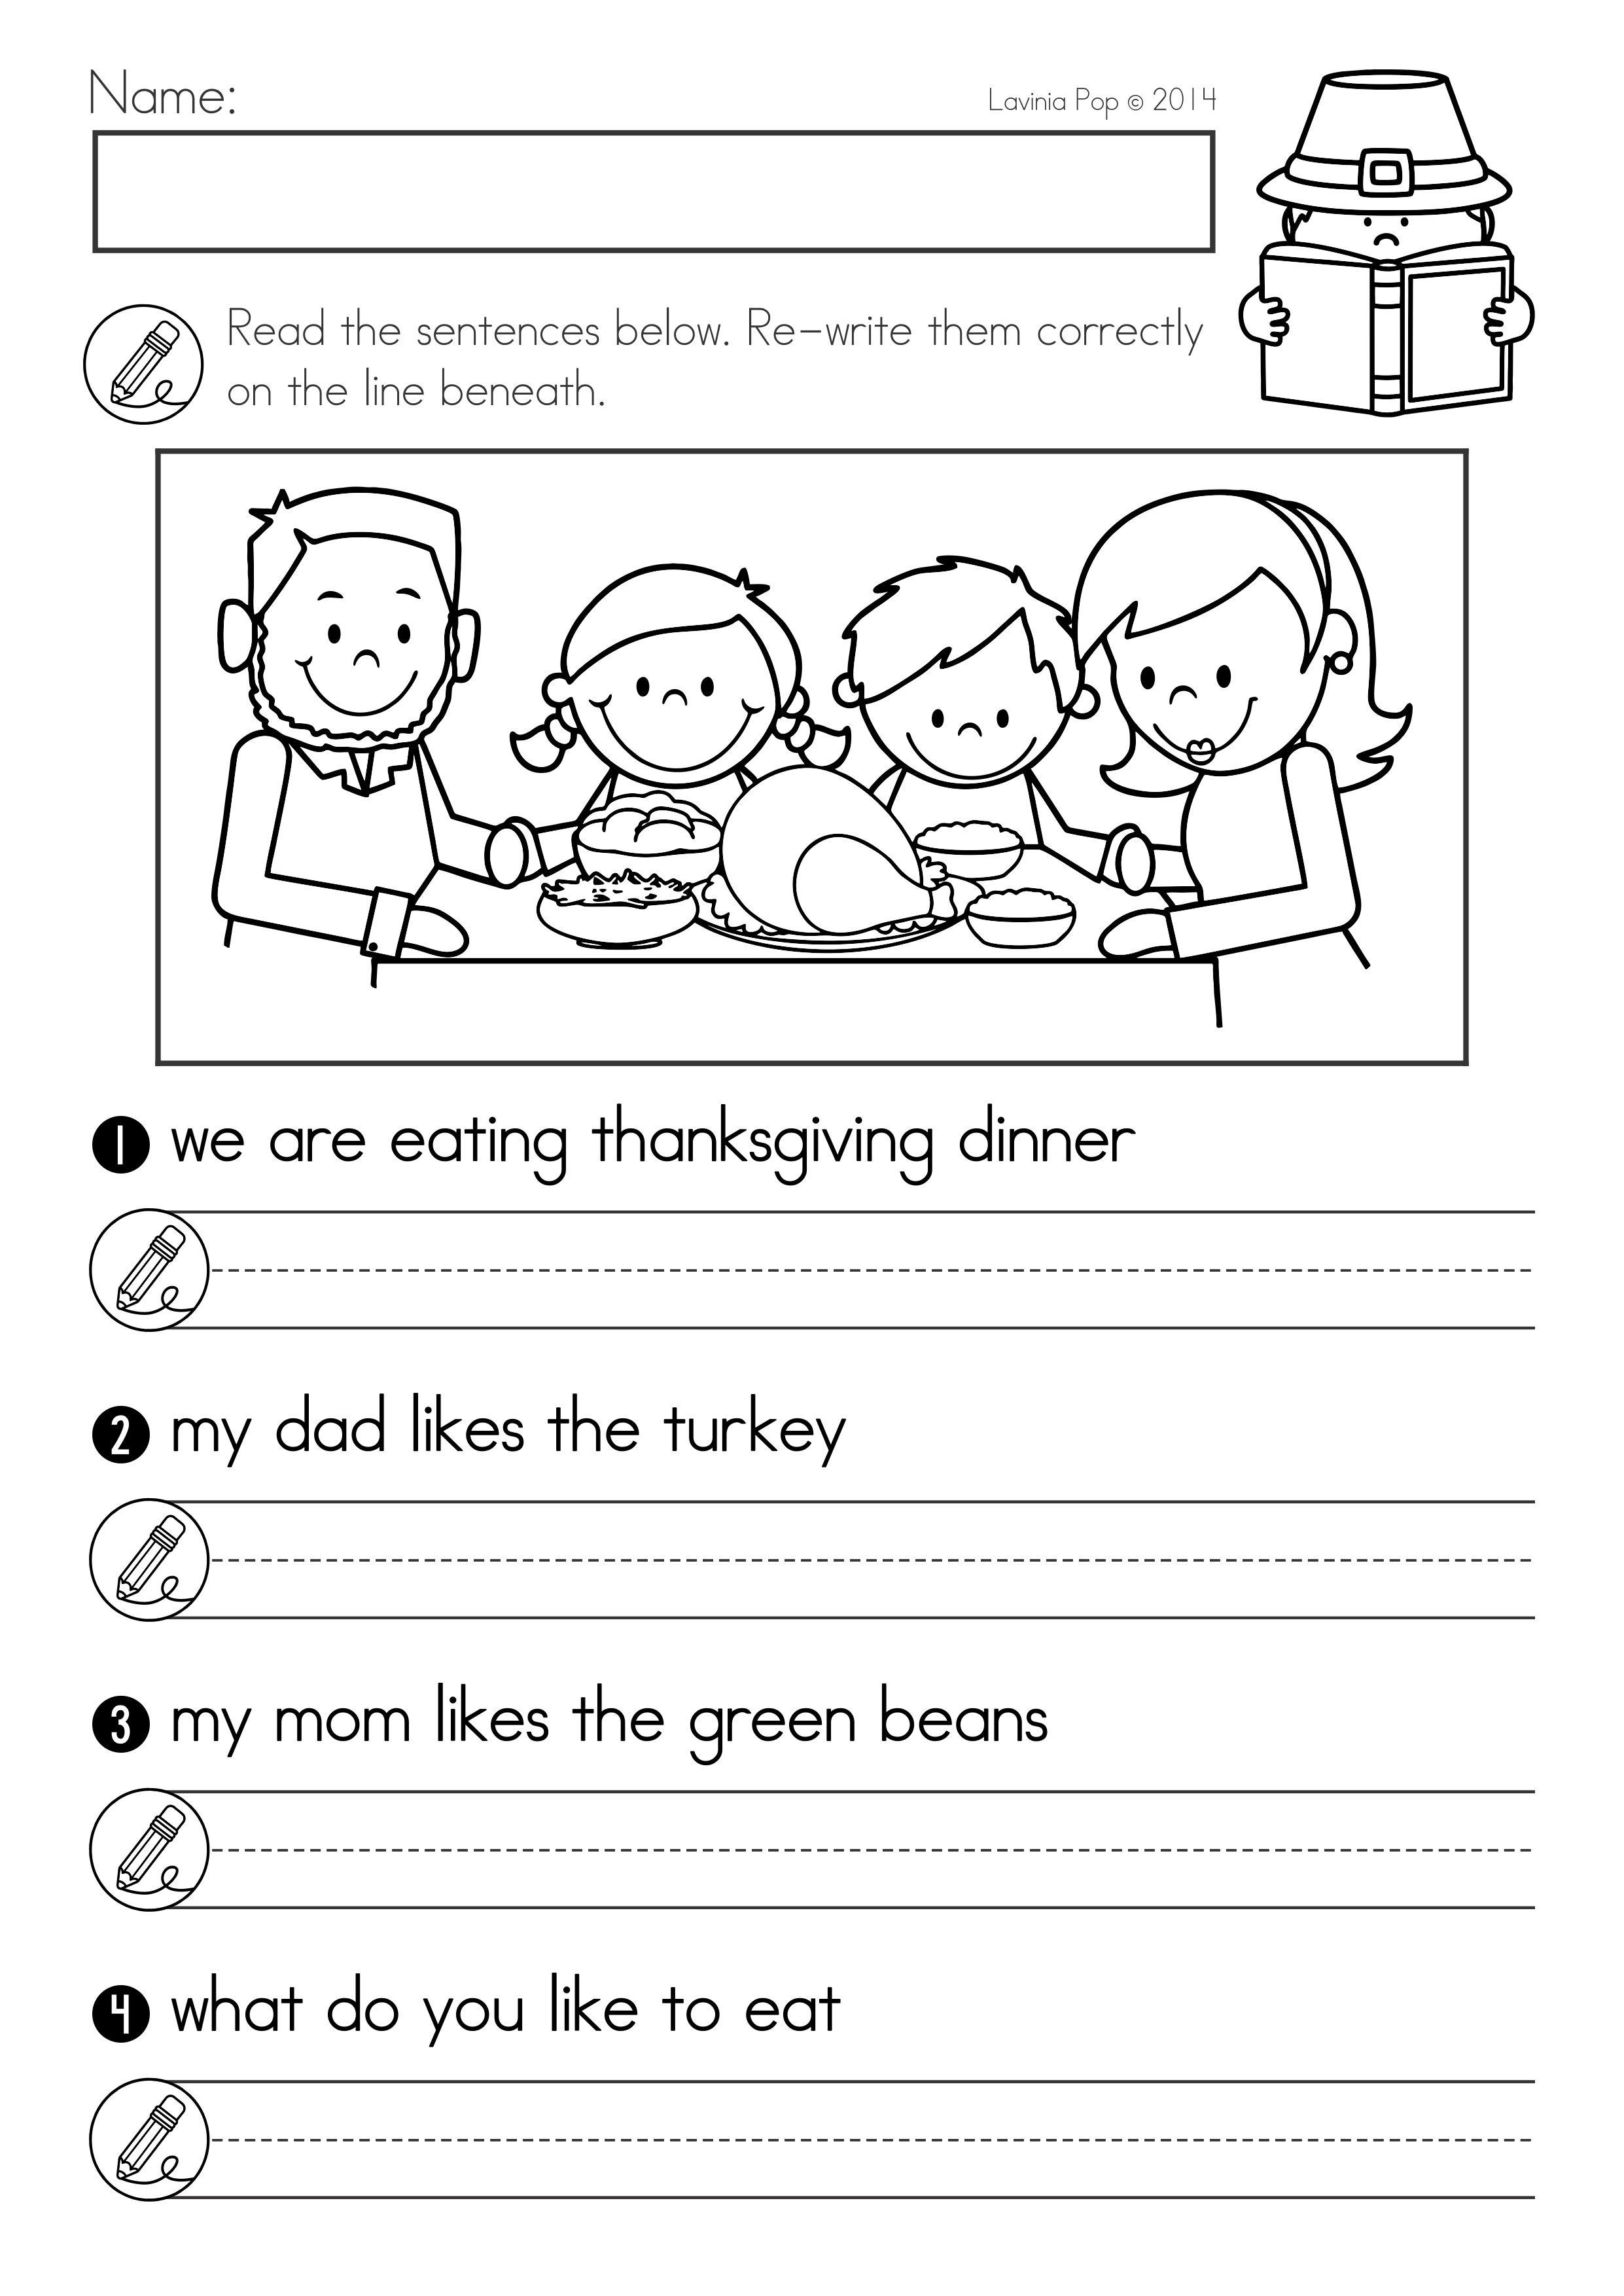 Thanksgiving Math Literacy Worksheets And Activities Literacy Worksheets Capital Letters Worksheet Worksheets For Class 1 [ 3508 x 2482 Pixel ]